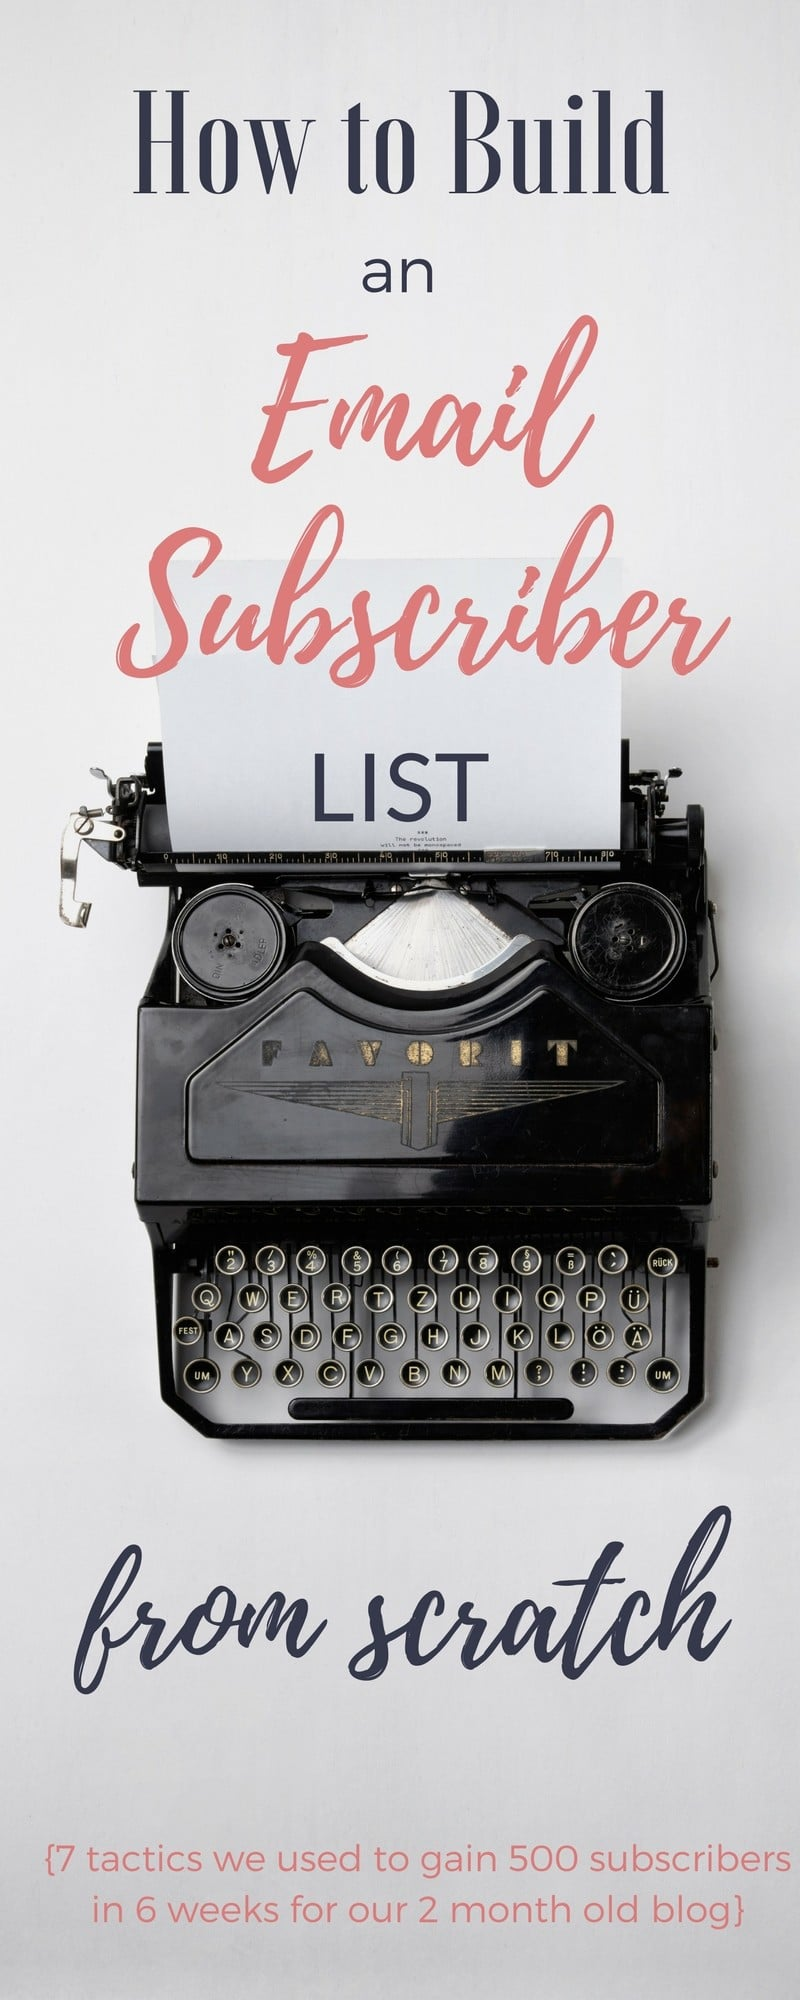 Build an email list for your new blog with these simple to follow tactics that I used to generate real email subscriber results for a 2 month old blog.